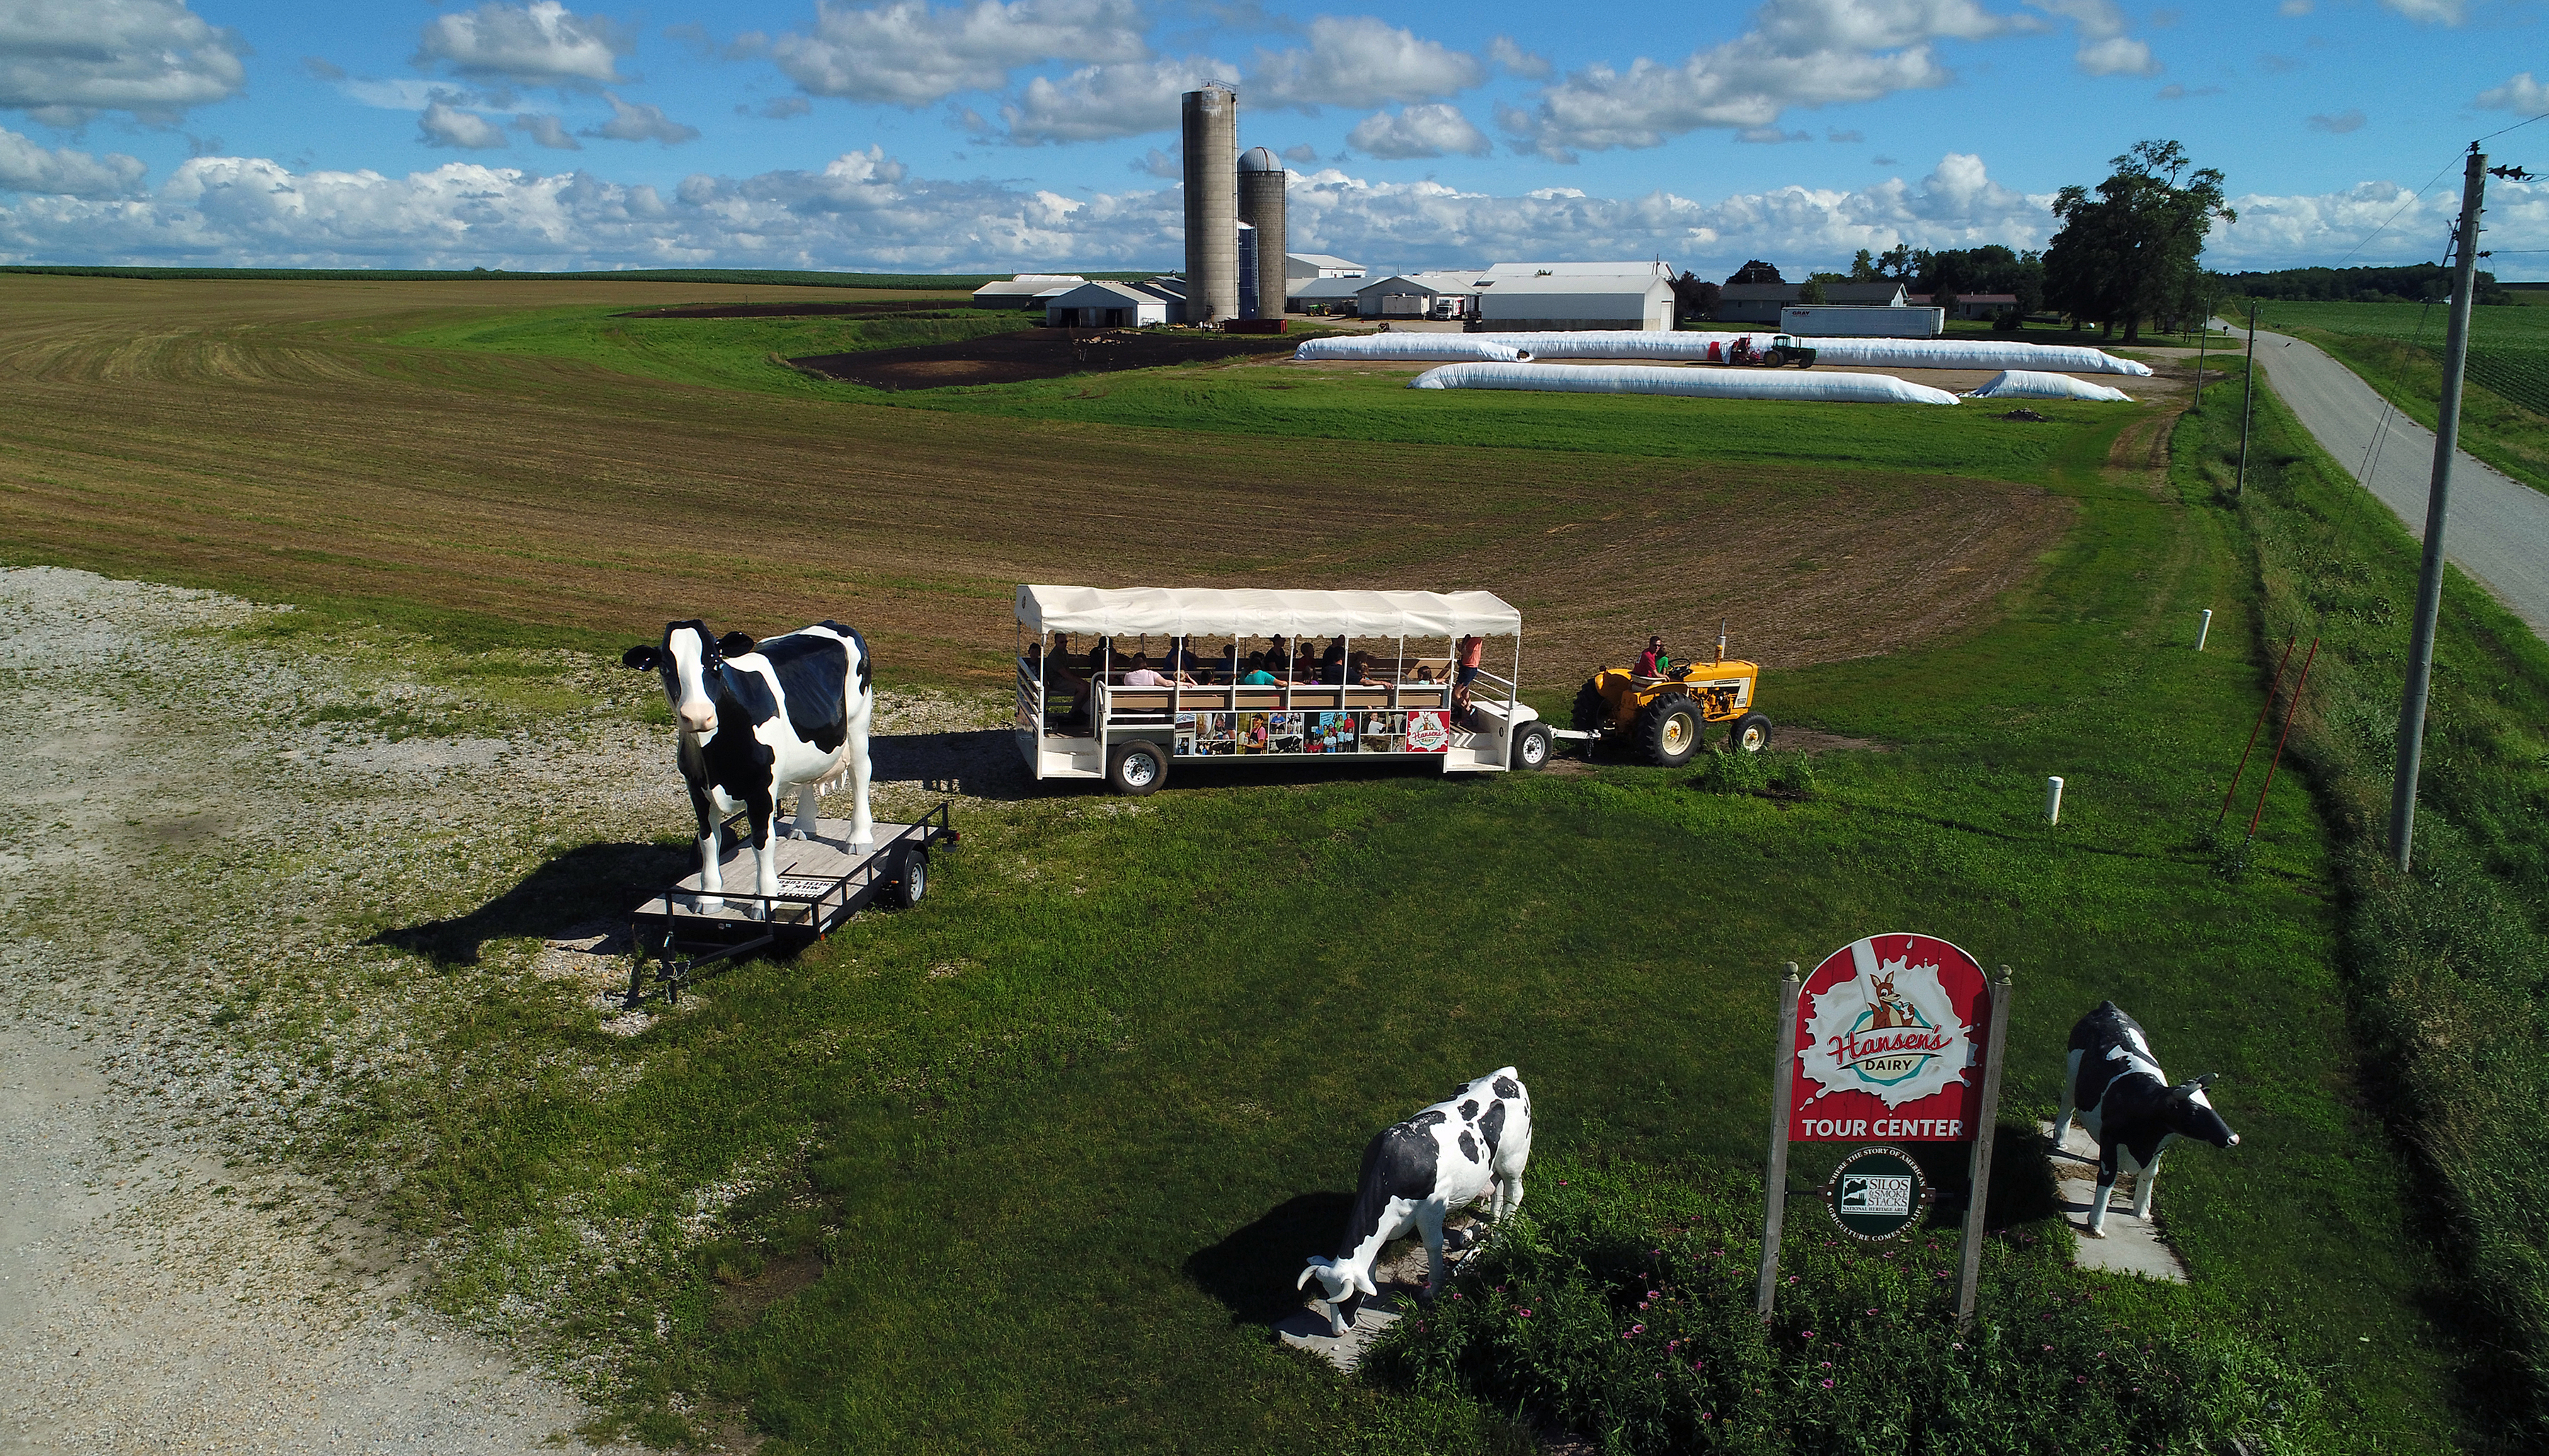 A tour about to get underway at the Hansens' dairy operation in Hudson, Iowa. The trolley takes visitors around the farm to learn how milk gets from the cow to the table